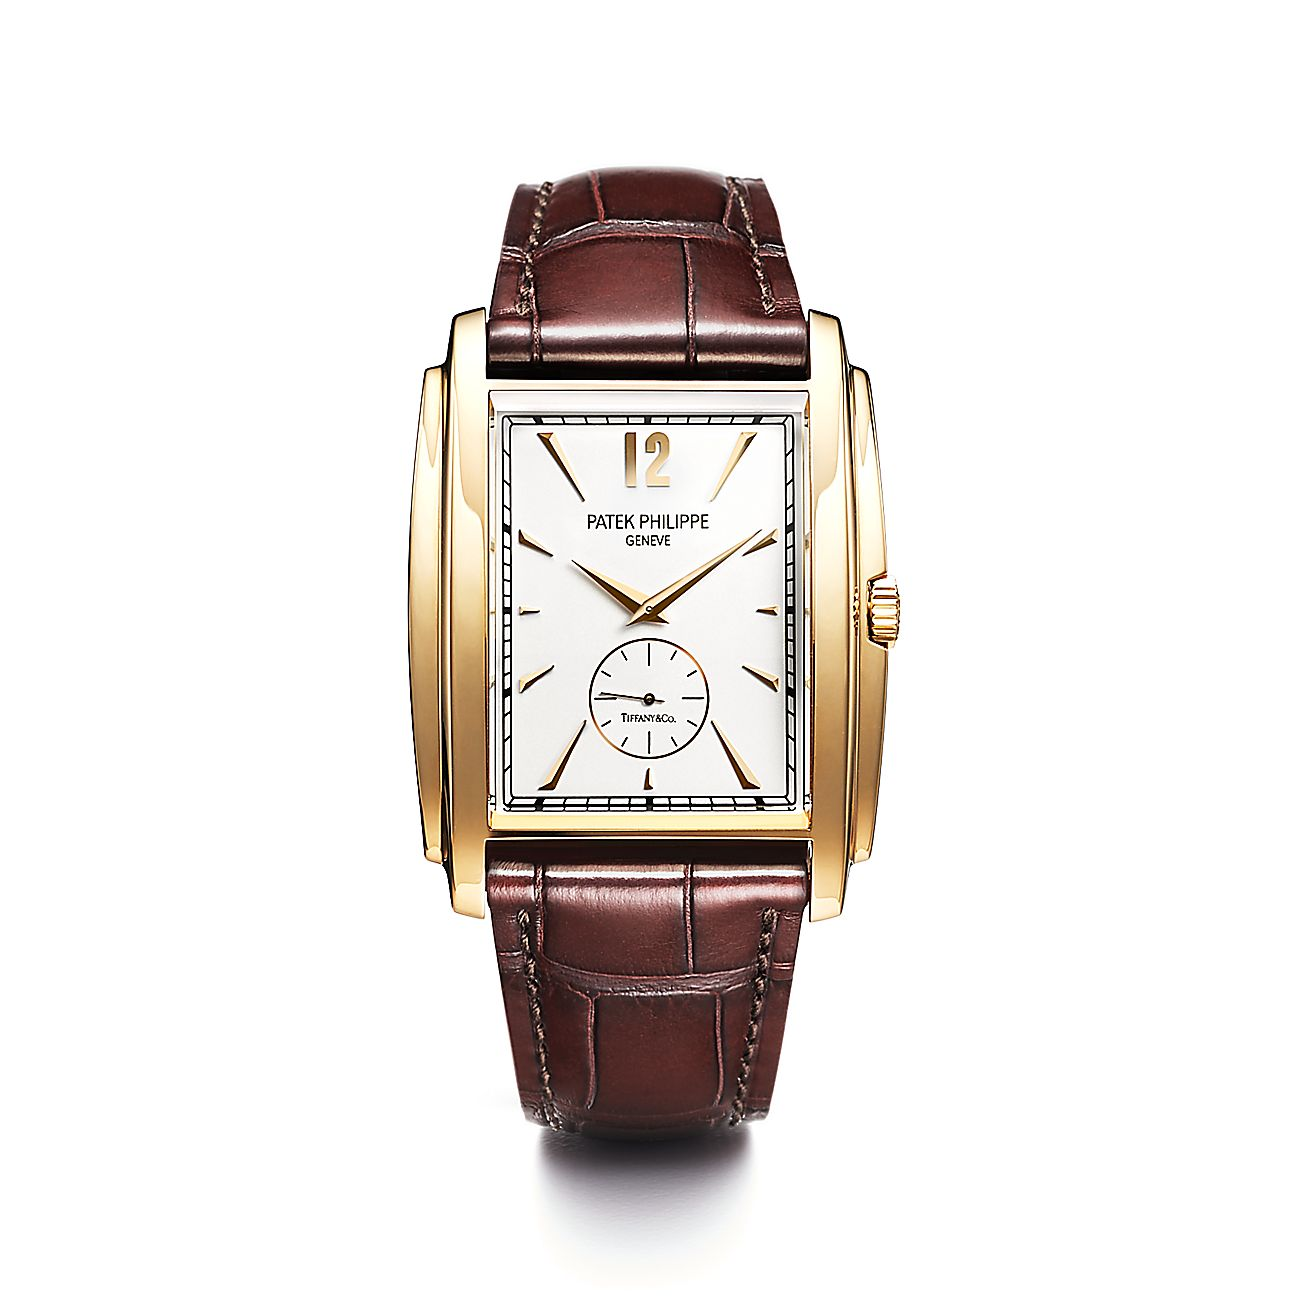 Patek philippe ladies gondolo watch price for Patek phillipe watch